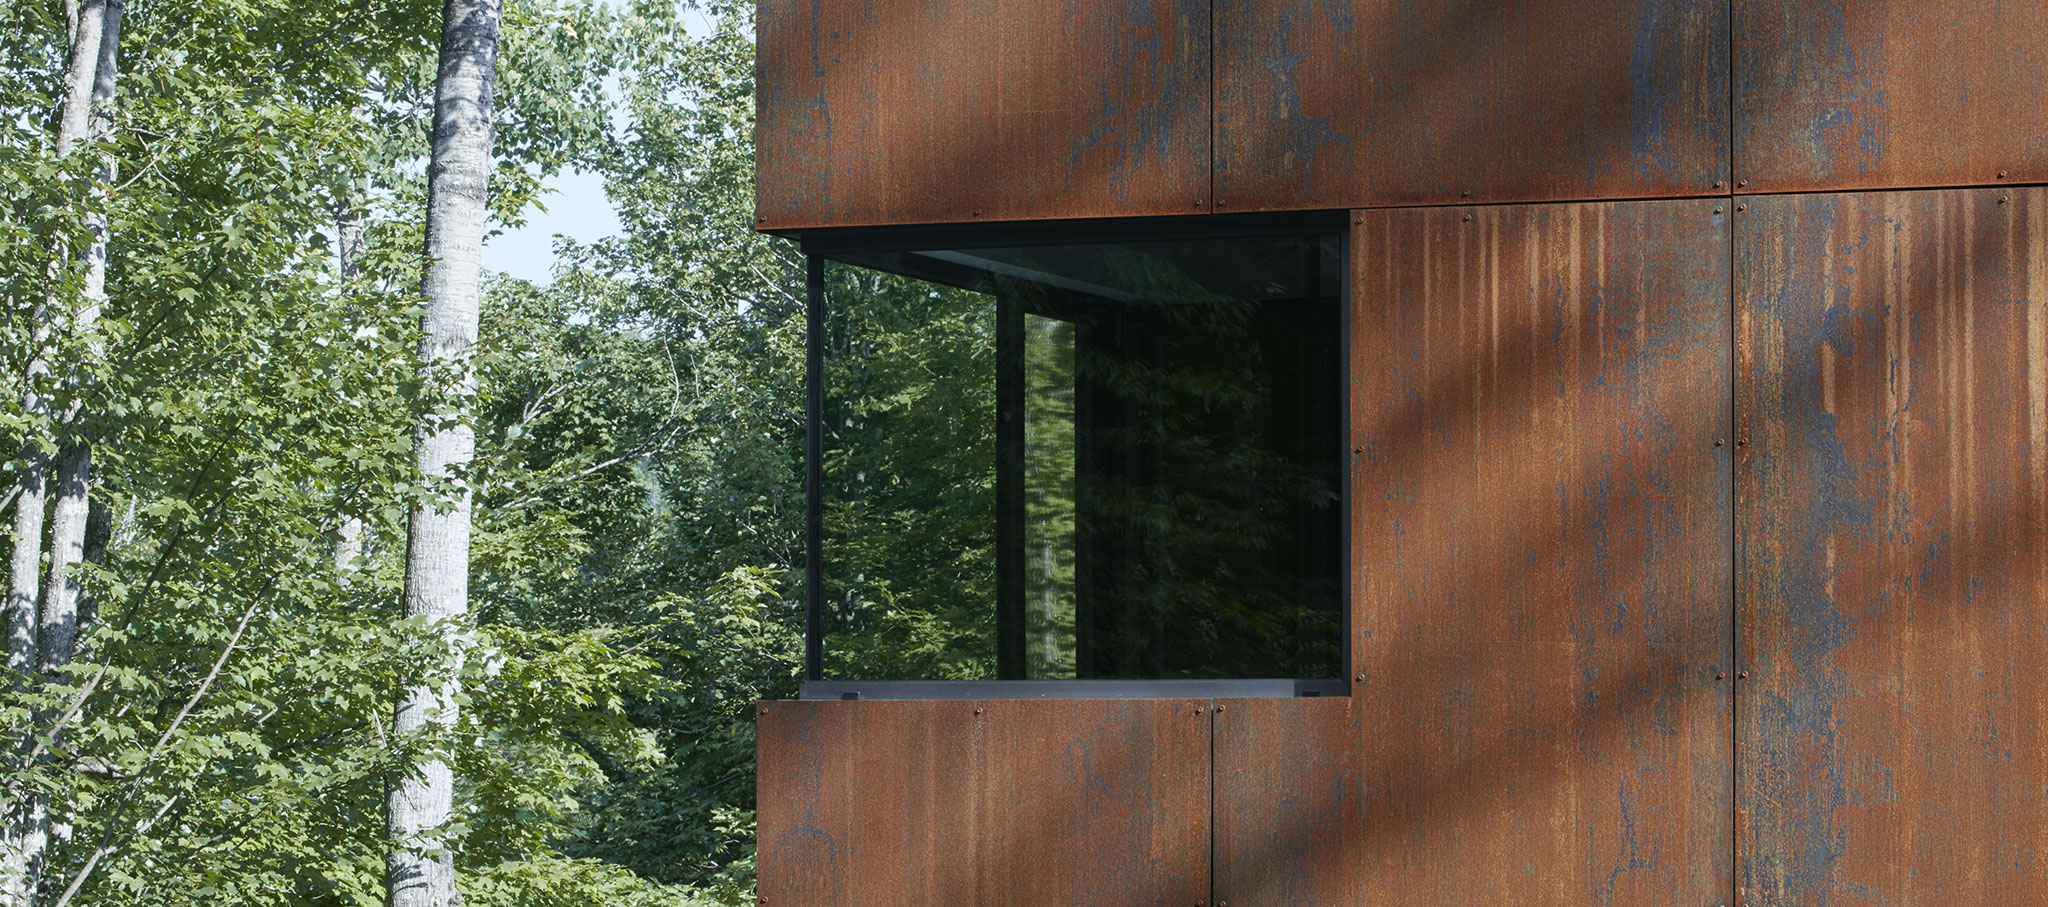 Window detail. House at Charlebois Lake by Paul Bernier. Photograph by James Brittain